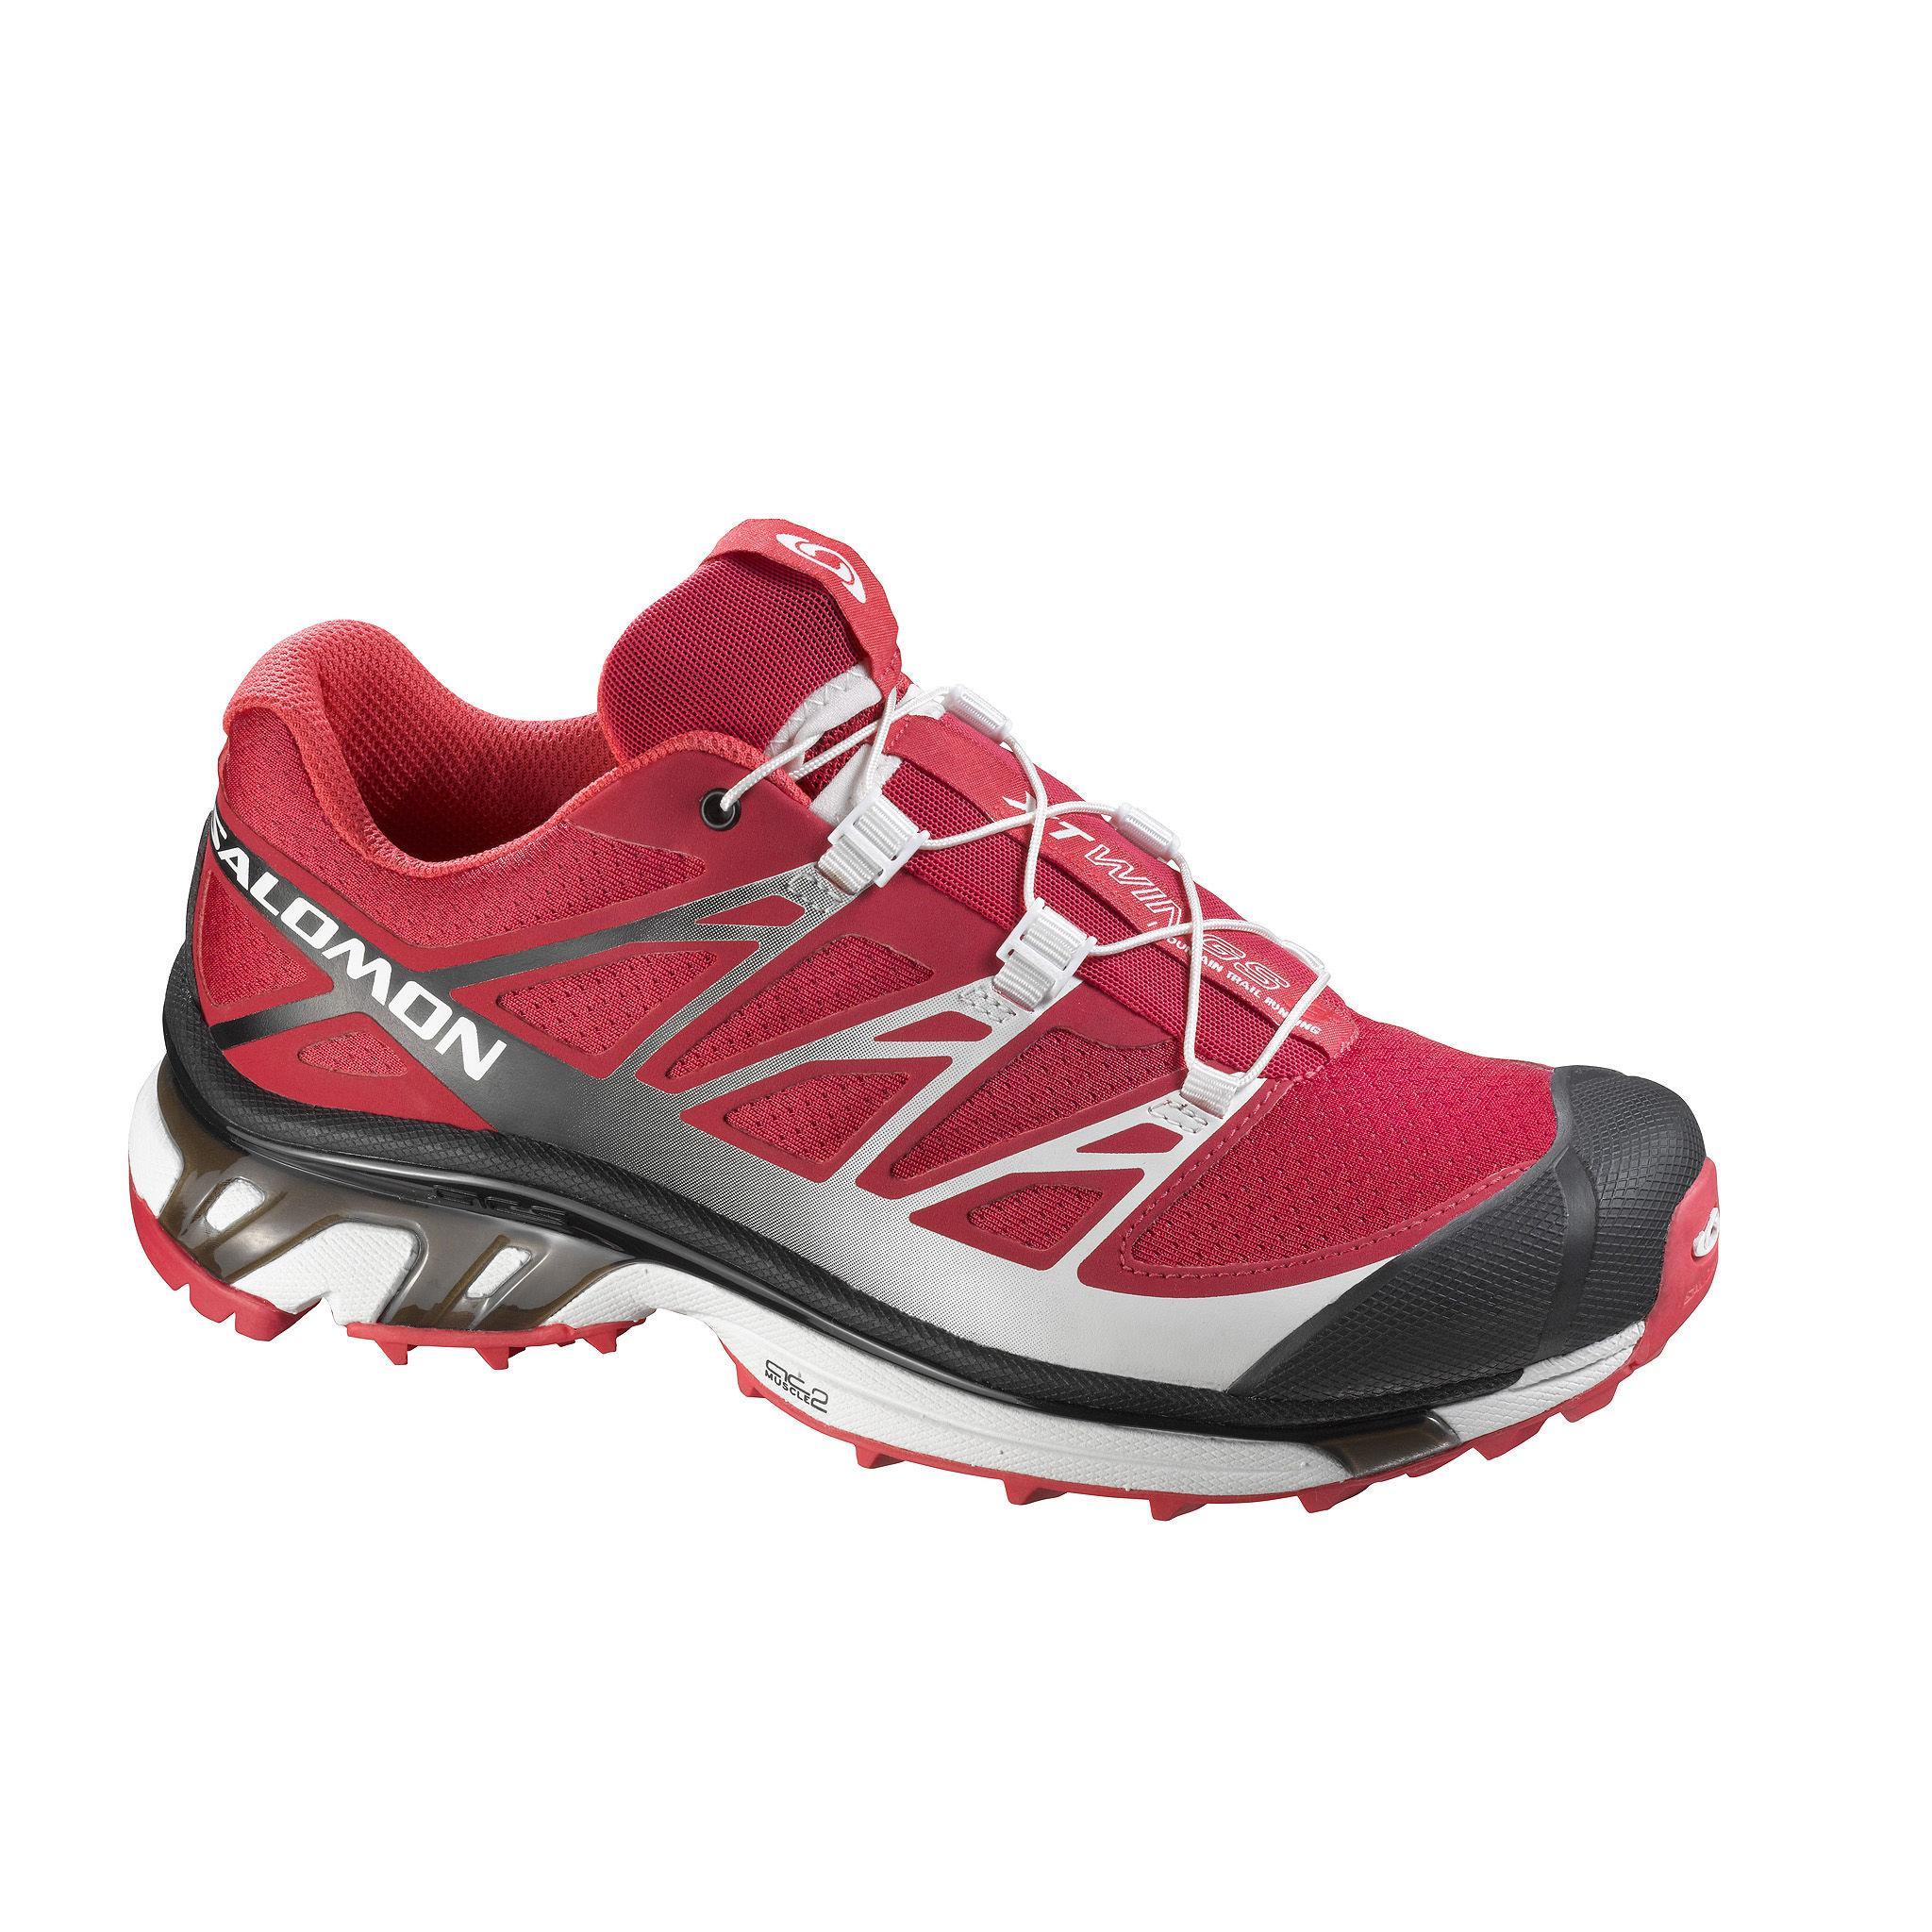 Foto Zapatillas para mujer Salomon - Shoes XT Wings 3 - UK 8